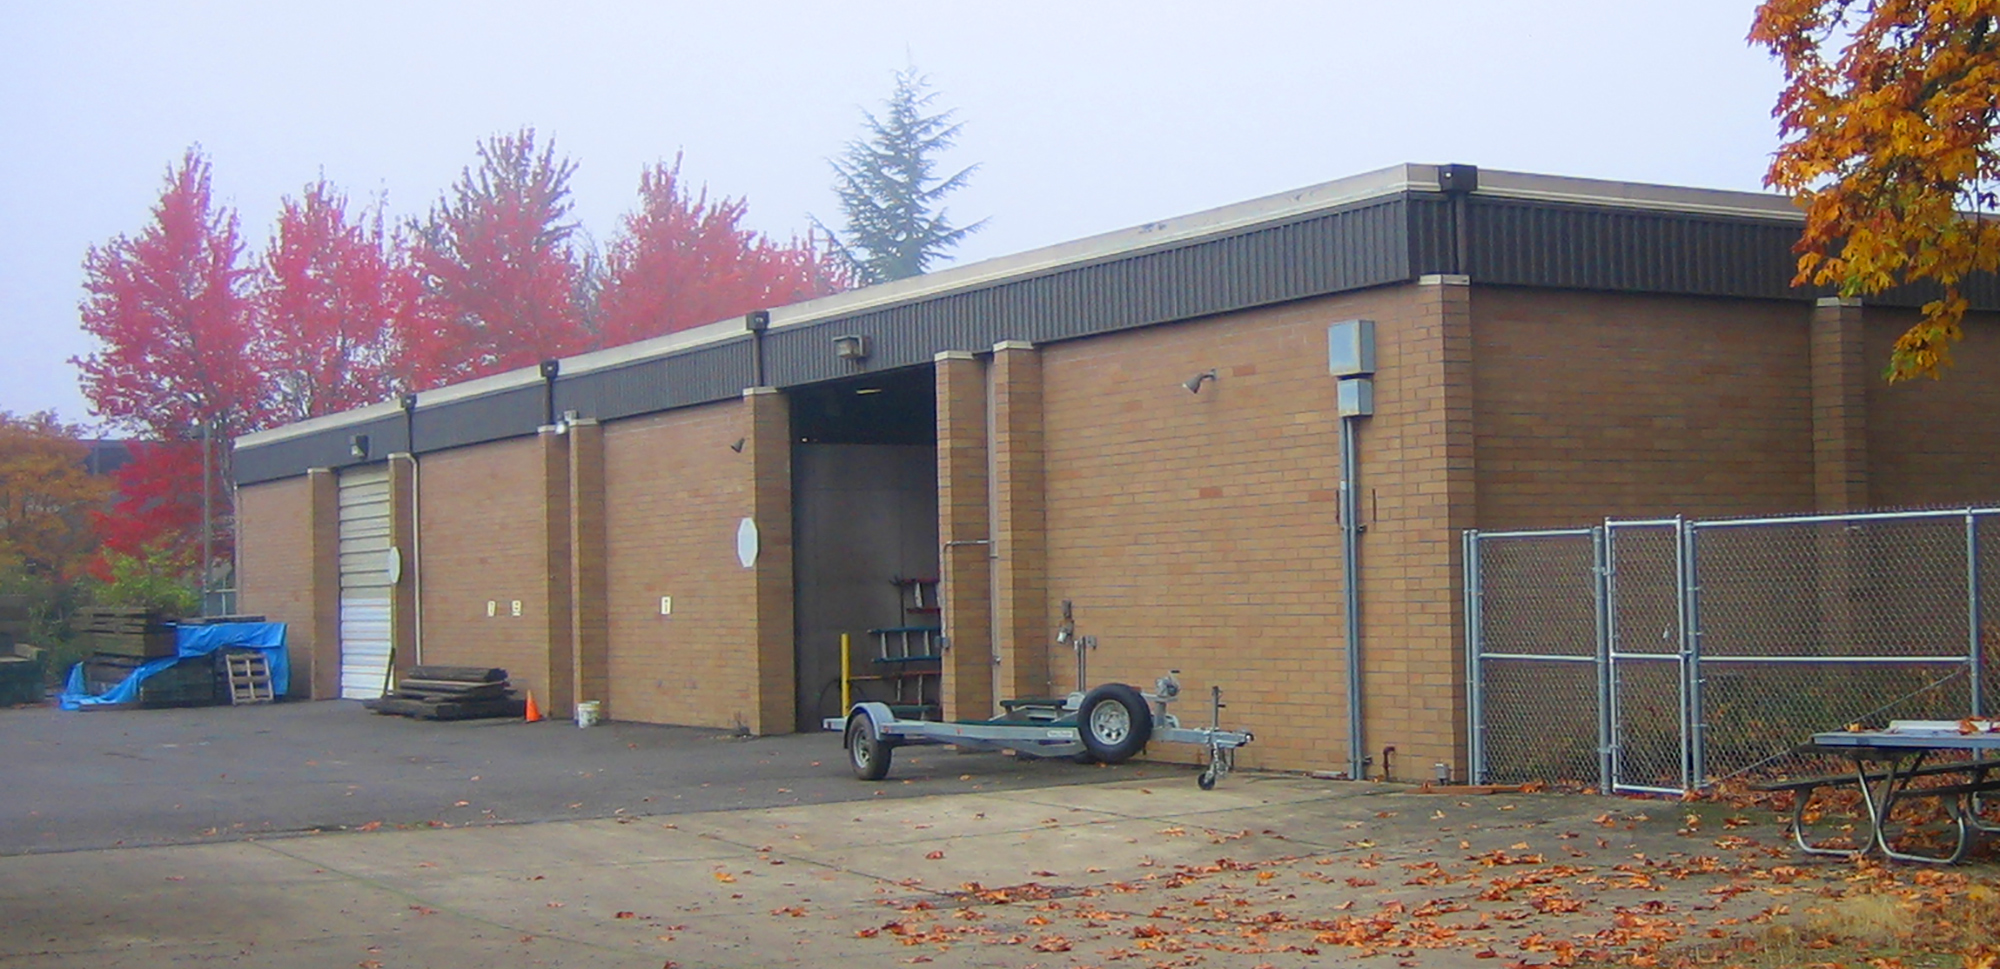 Before the renovation, the structure was a vehicle warehouse.